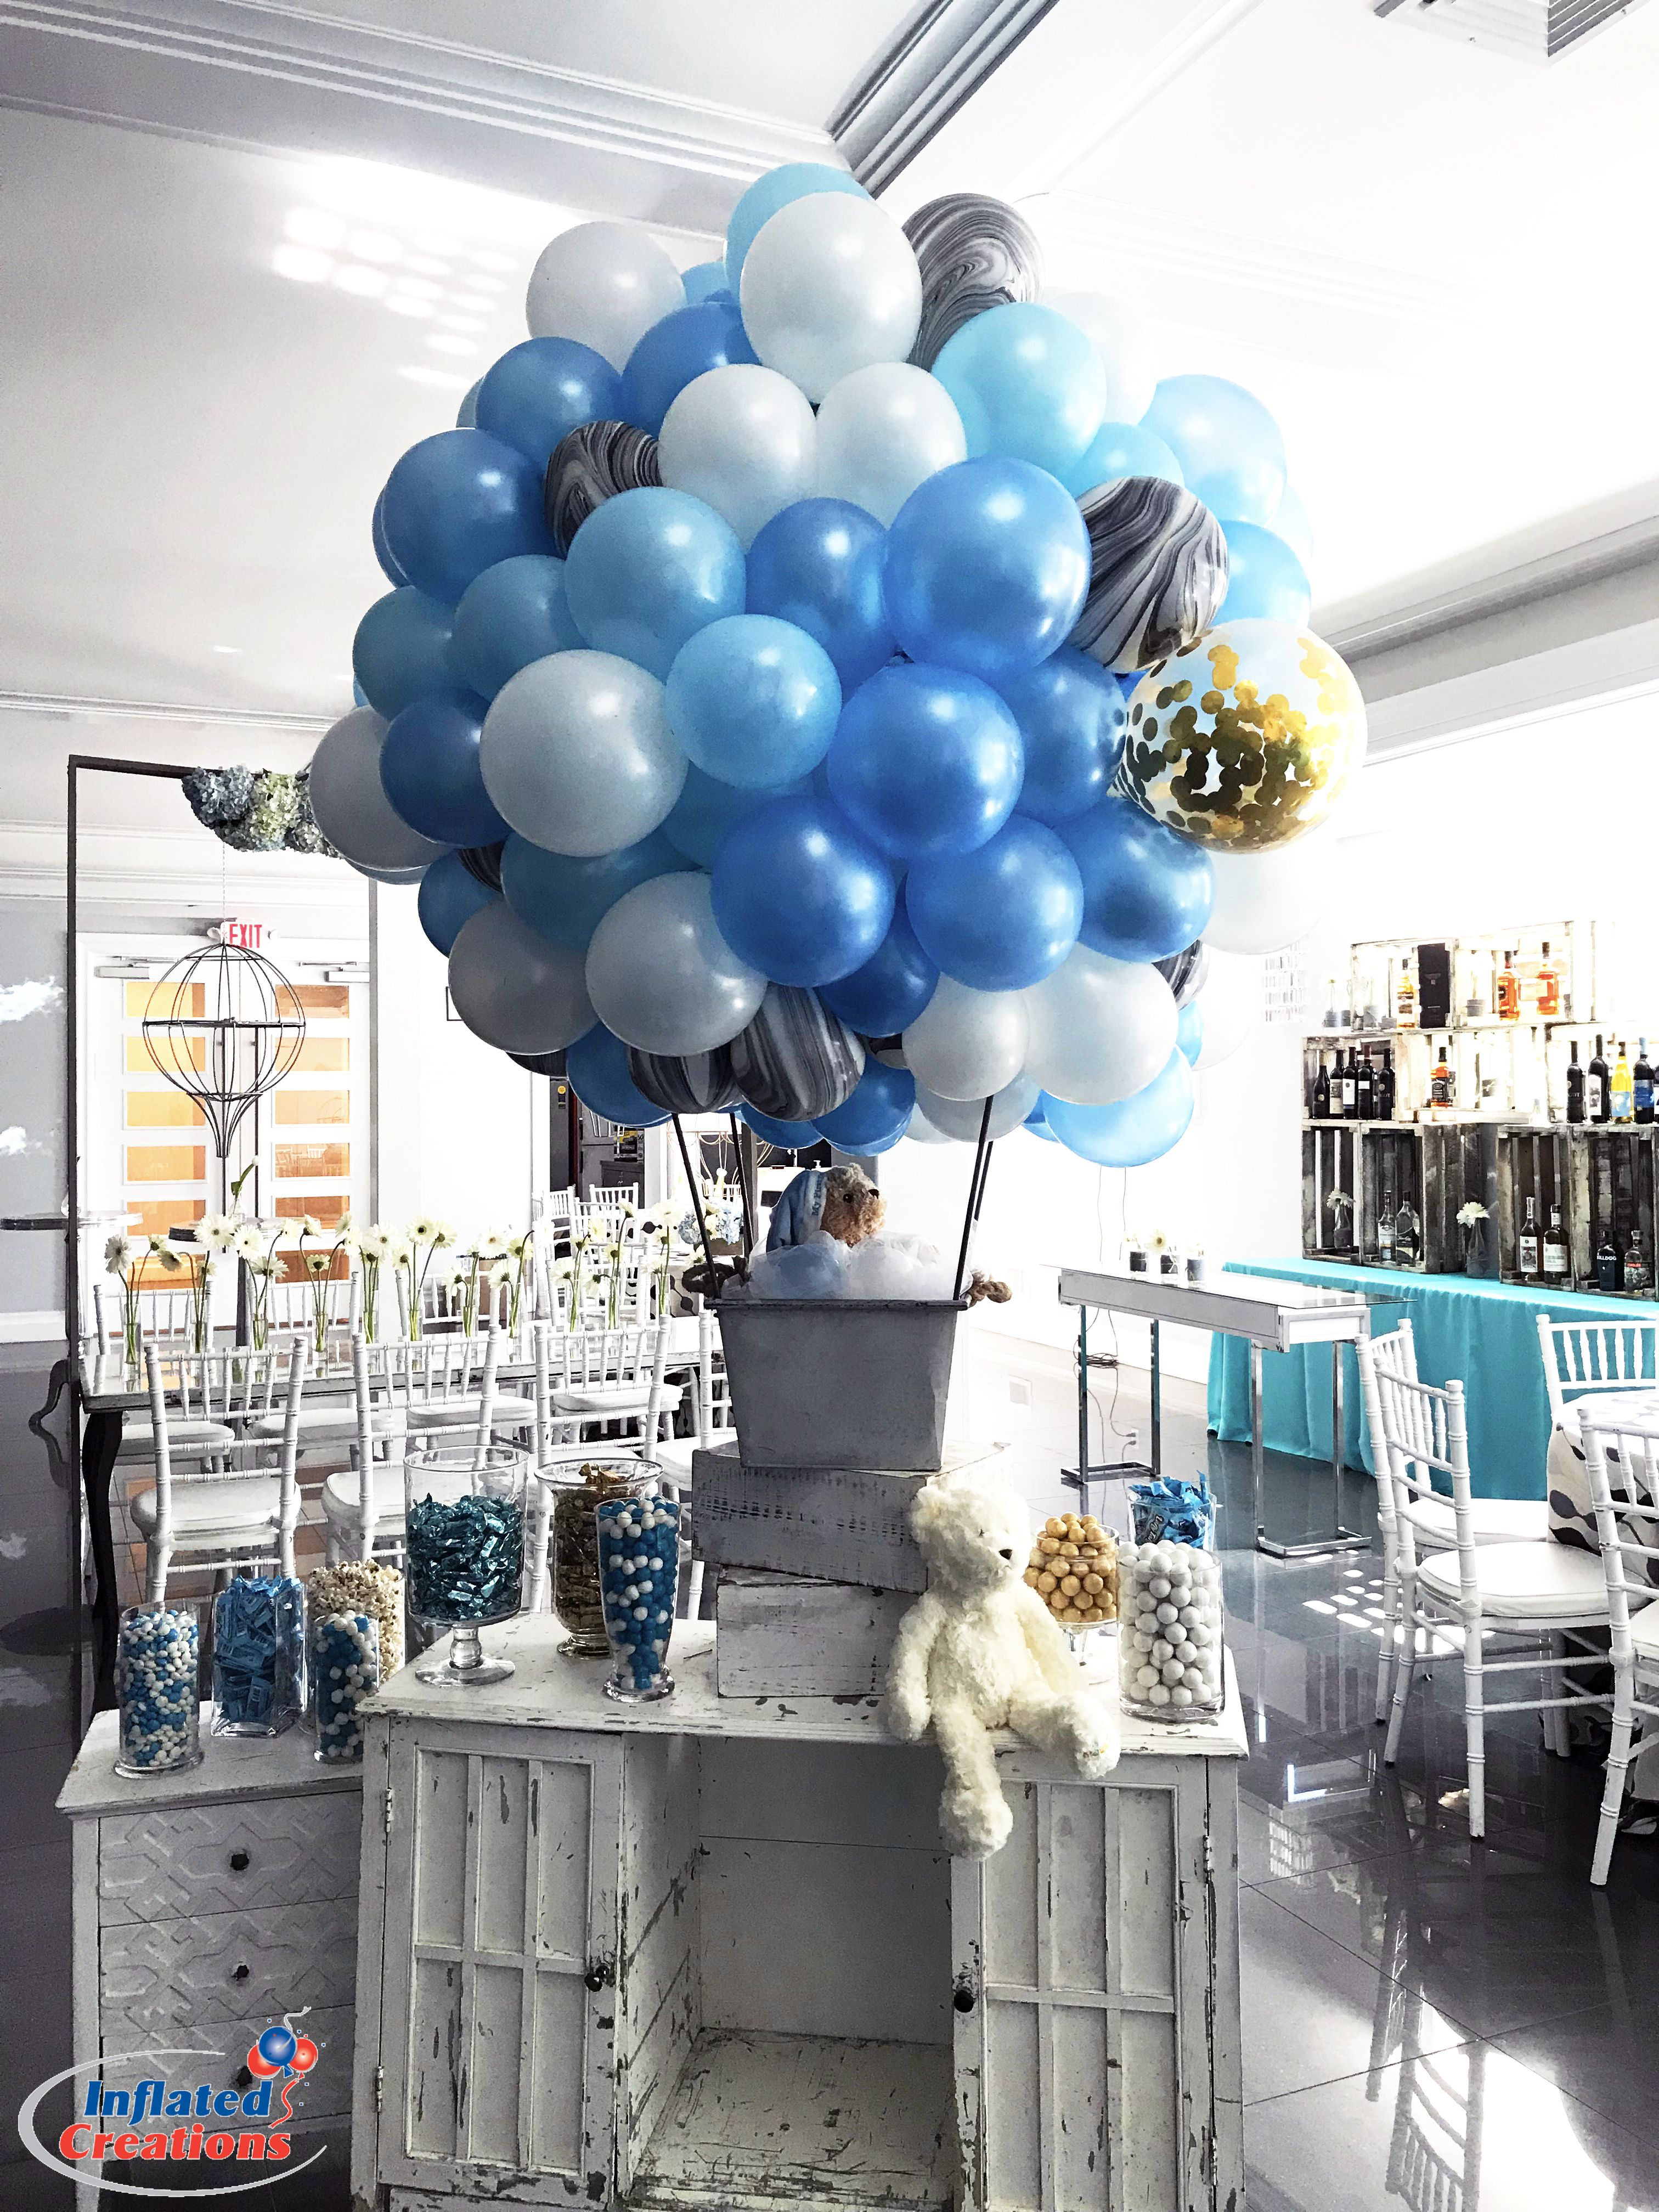 Baby Boy Party Baby Shower Bris Birthday Hot Air Balloon Table Decor Hot Air Balloon Baby Shower Baby Shower Balloons Baby Shower Decorations For Boys